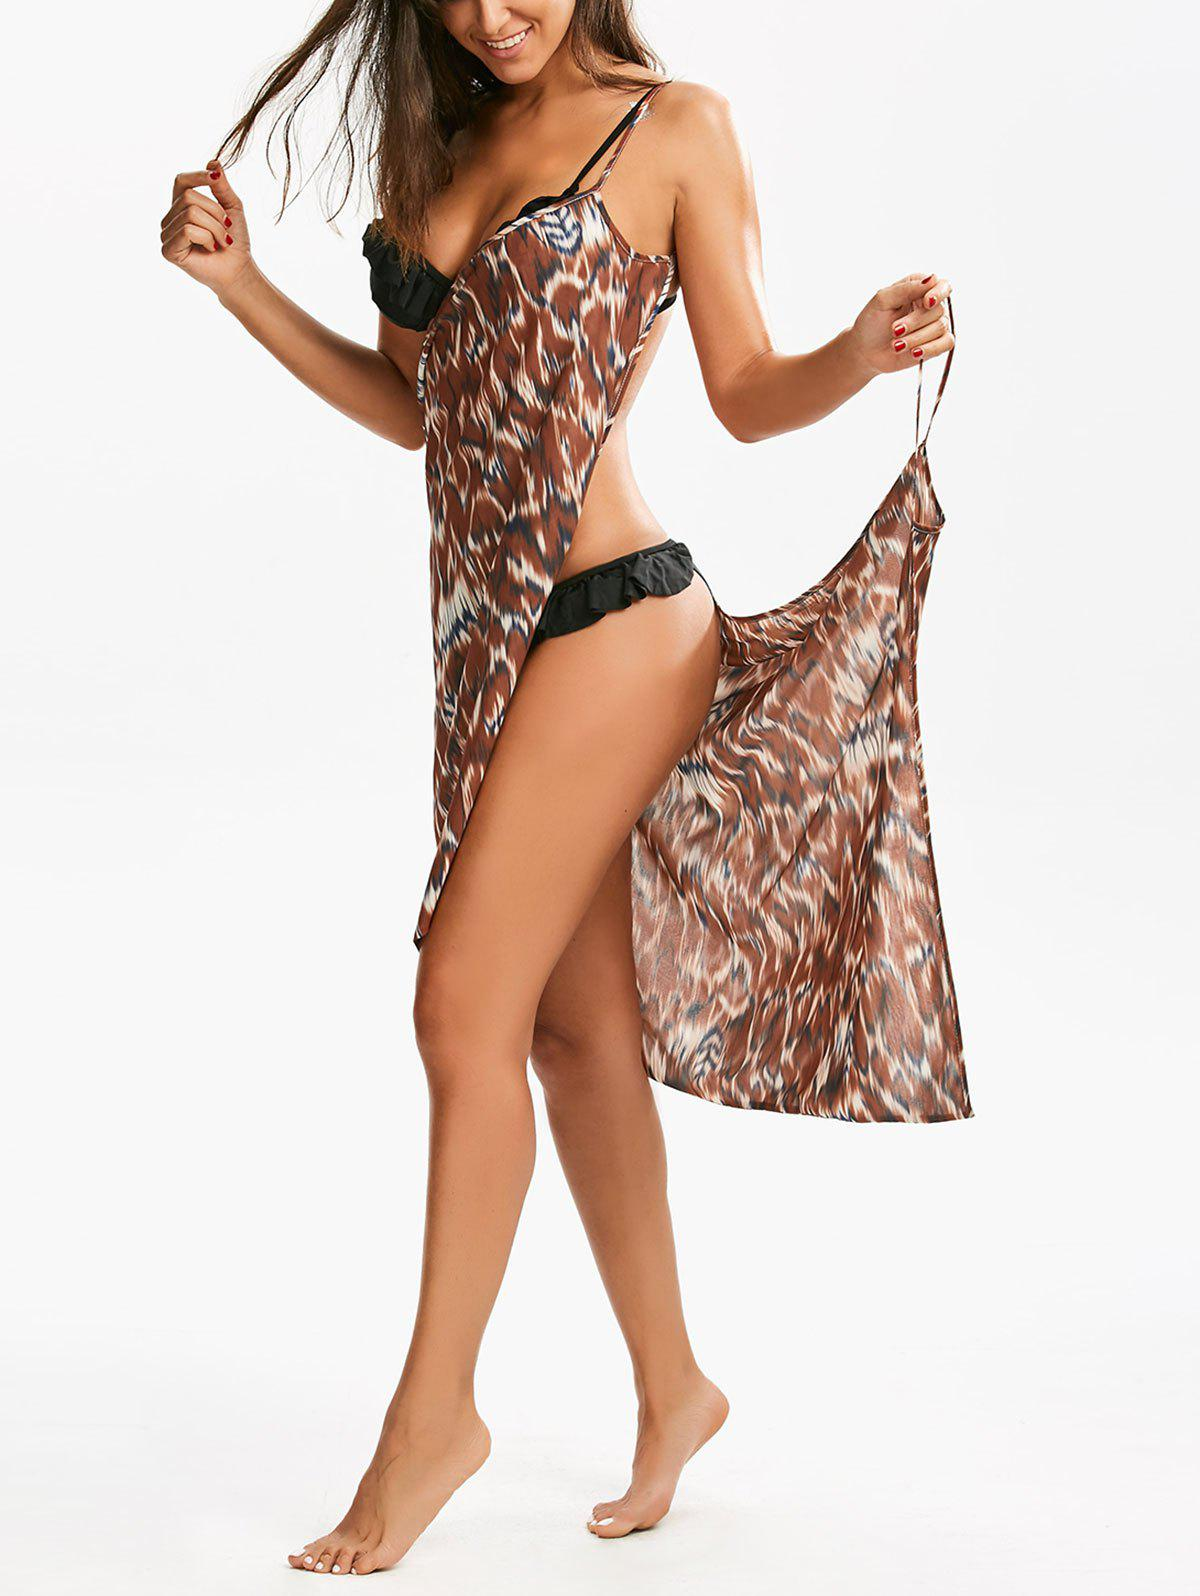 Double-Deck Cheetah Print Beach Cover Up - multicolorcolore 2XL